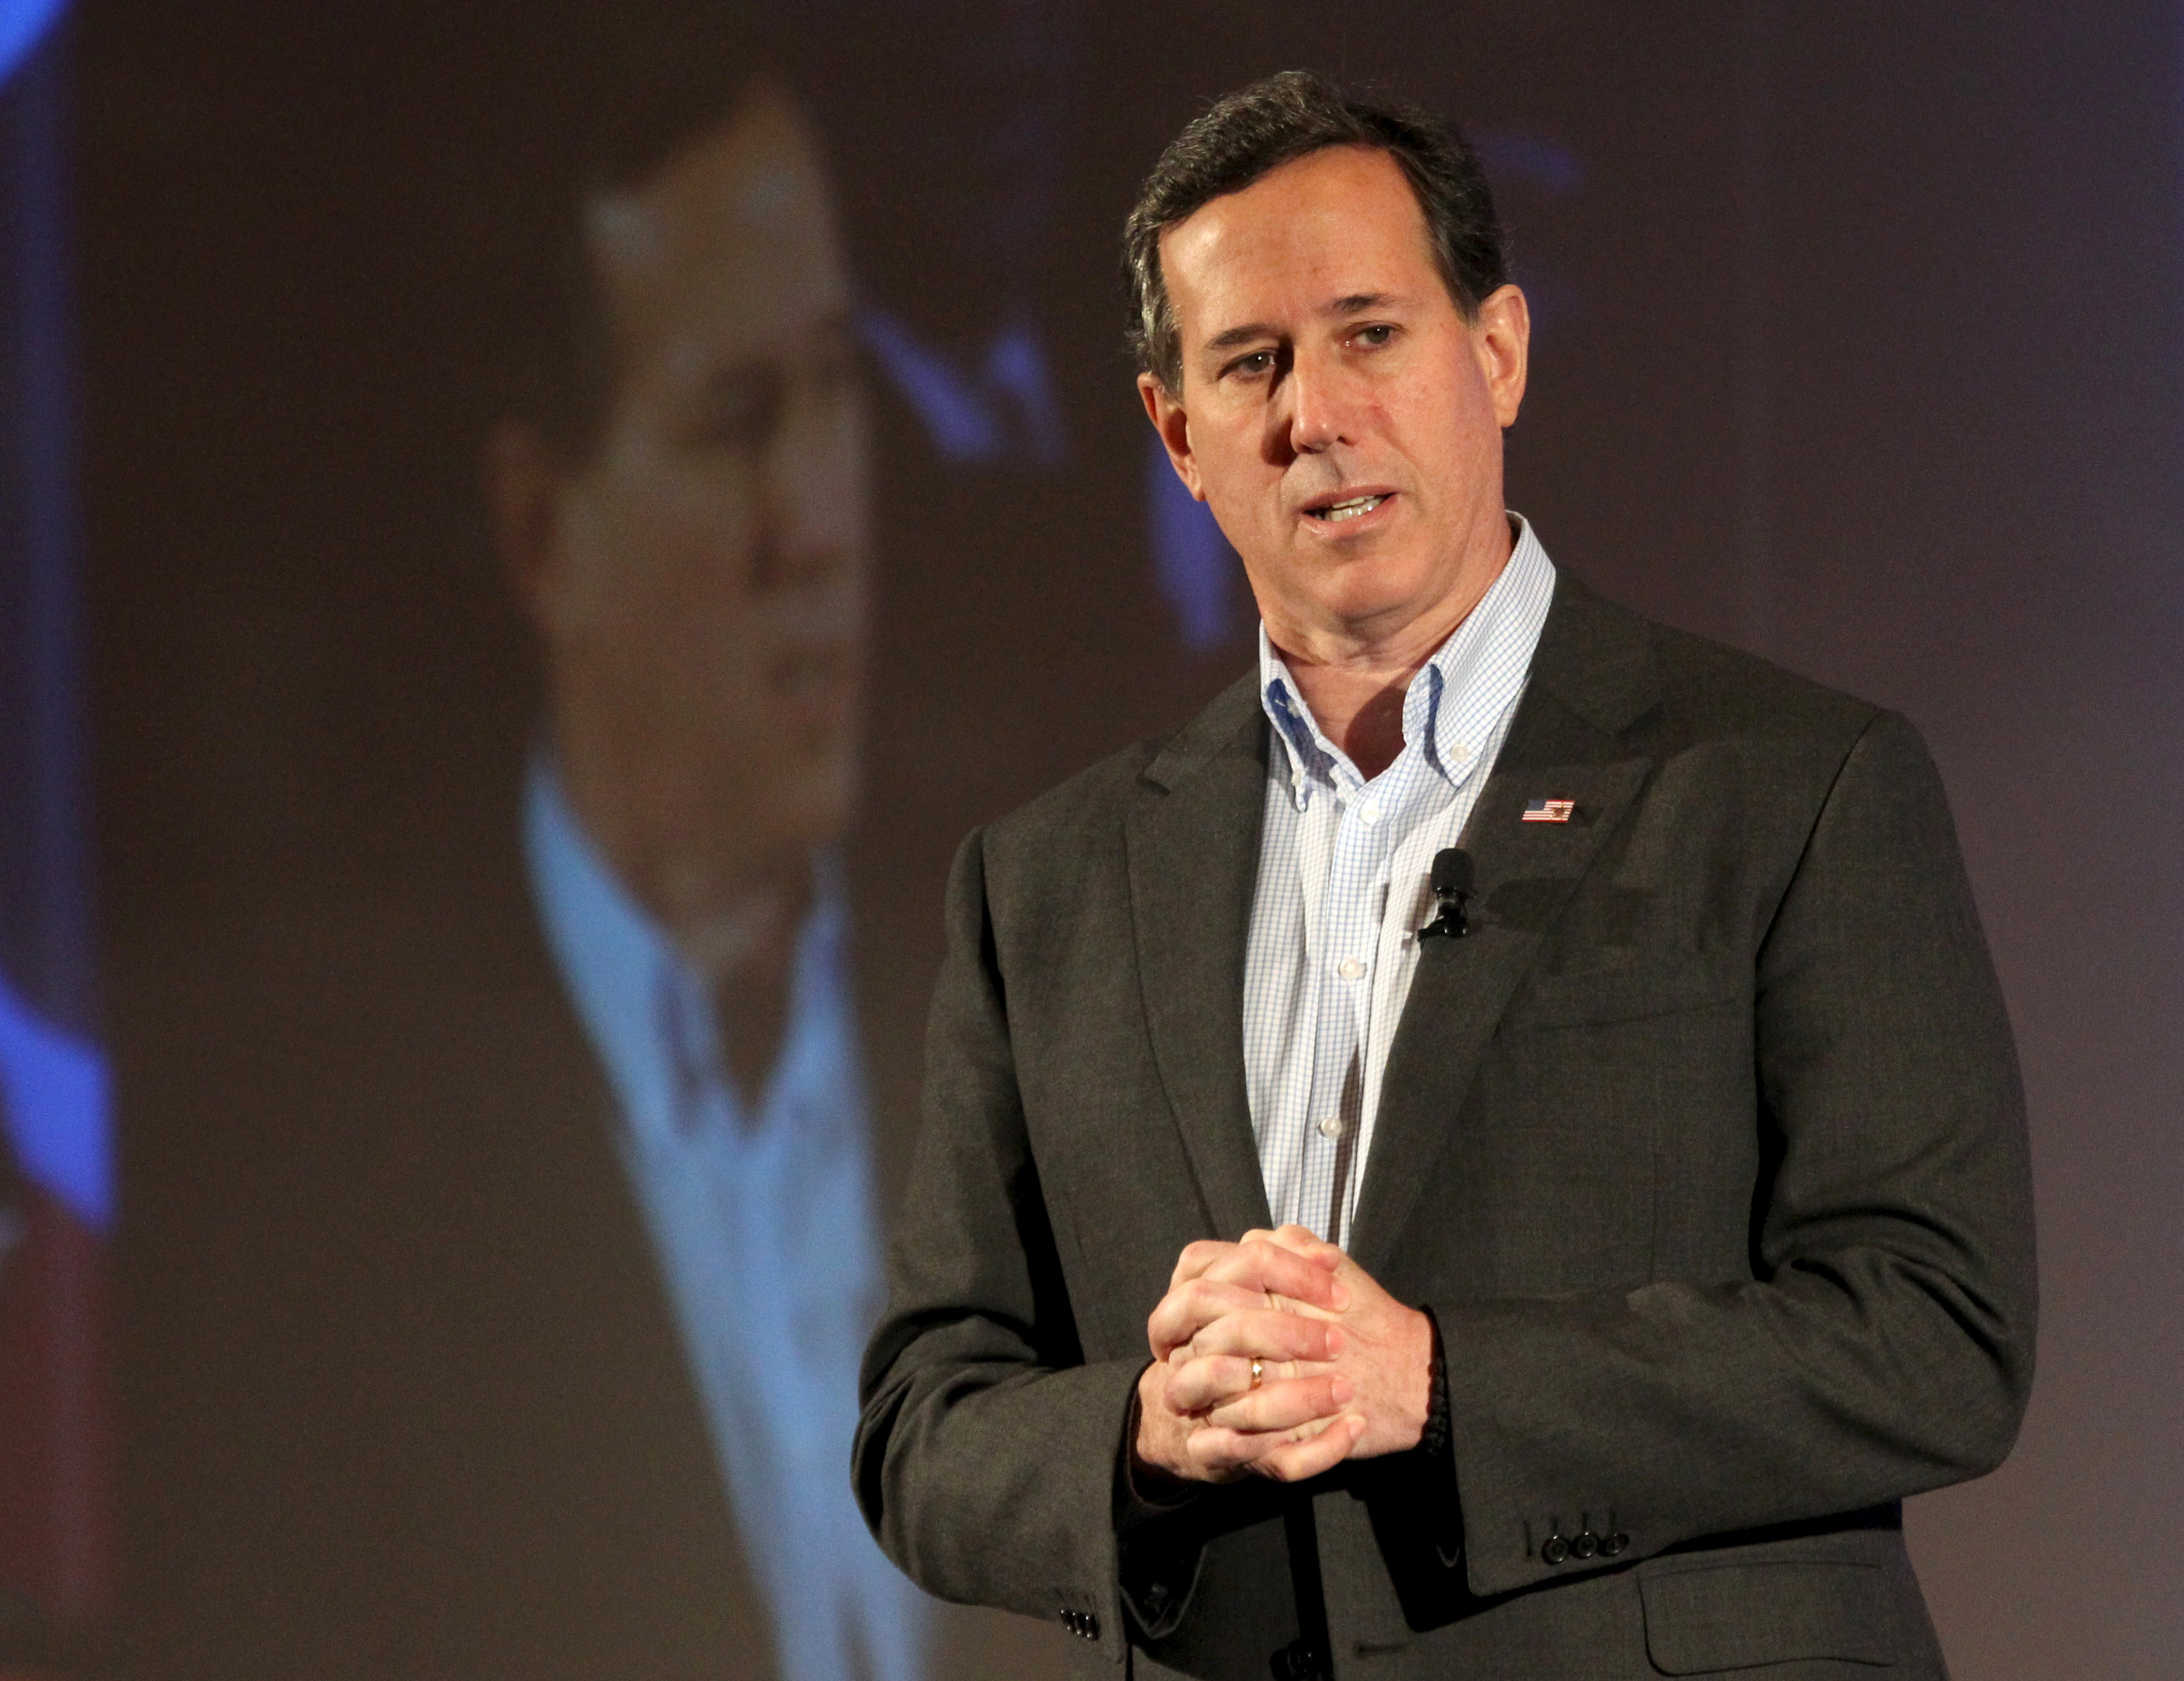 U.S. Republican presidential candidate Rick Santorum speaks at the New Hampshire GOP's FITN Presidential town hall in Nashua, New Hampshire January 23, 2016.     REUTERS/Mary Schwalm